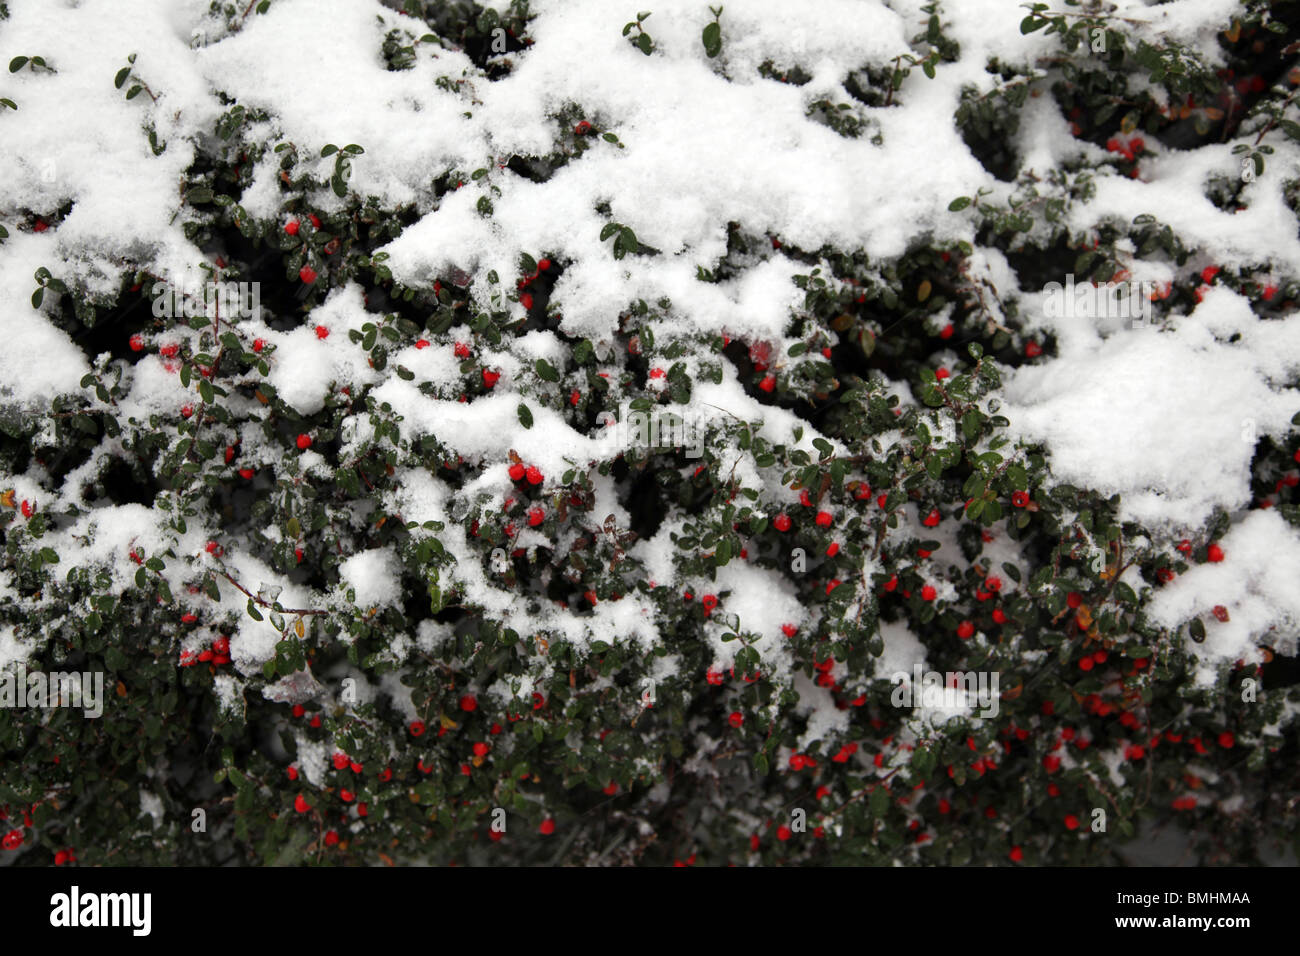 Snow covered shrubbery in Westerpark - Stock Image